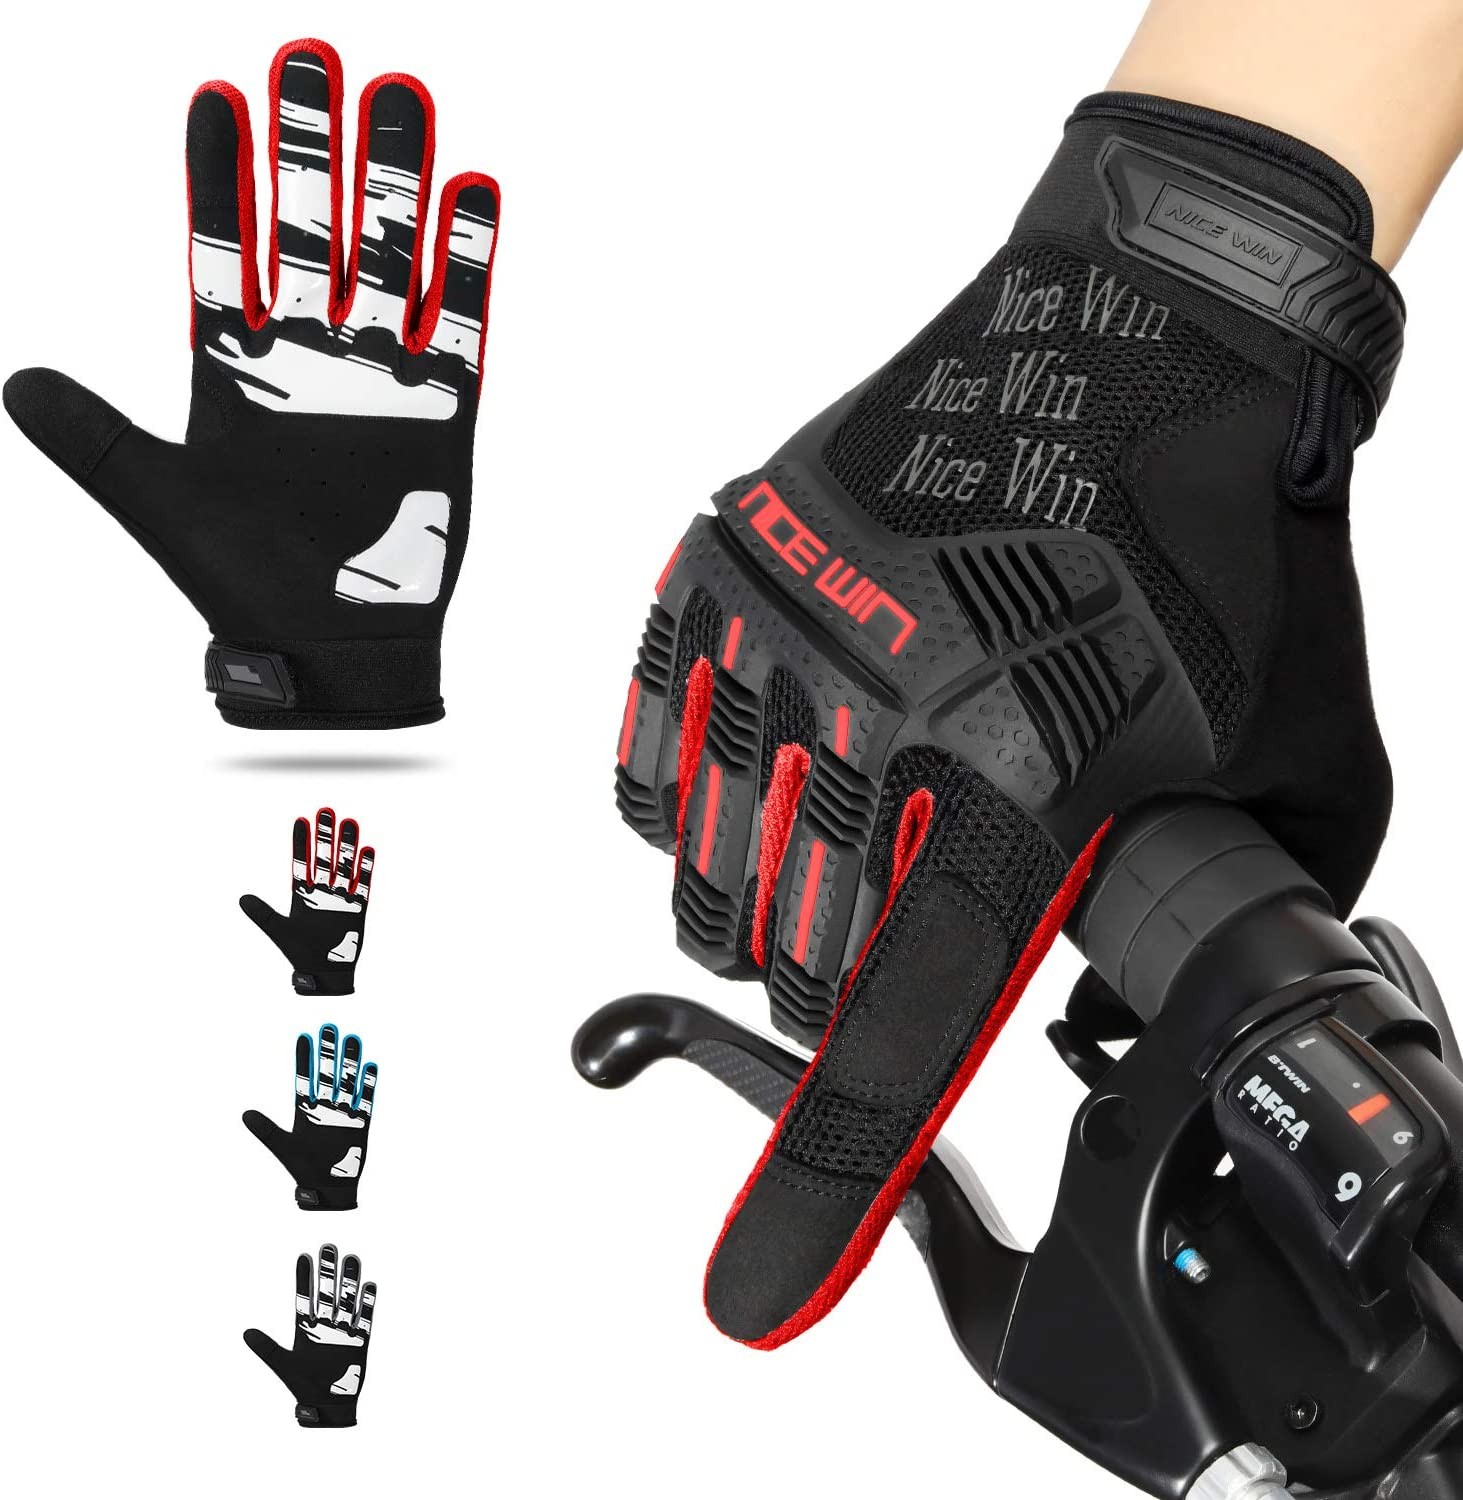 Details about  /Bike Riding Full Finger Glove Racing Motorcycle Gloves Cycling Bicycle BMX MTB